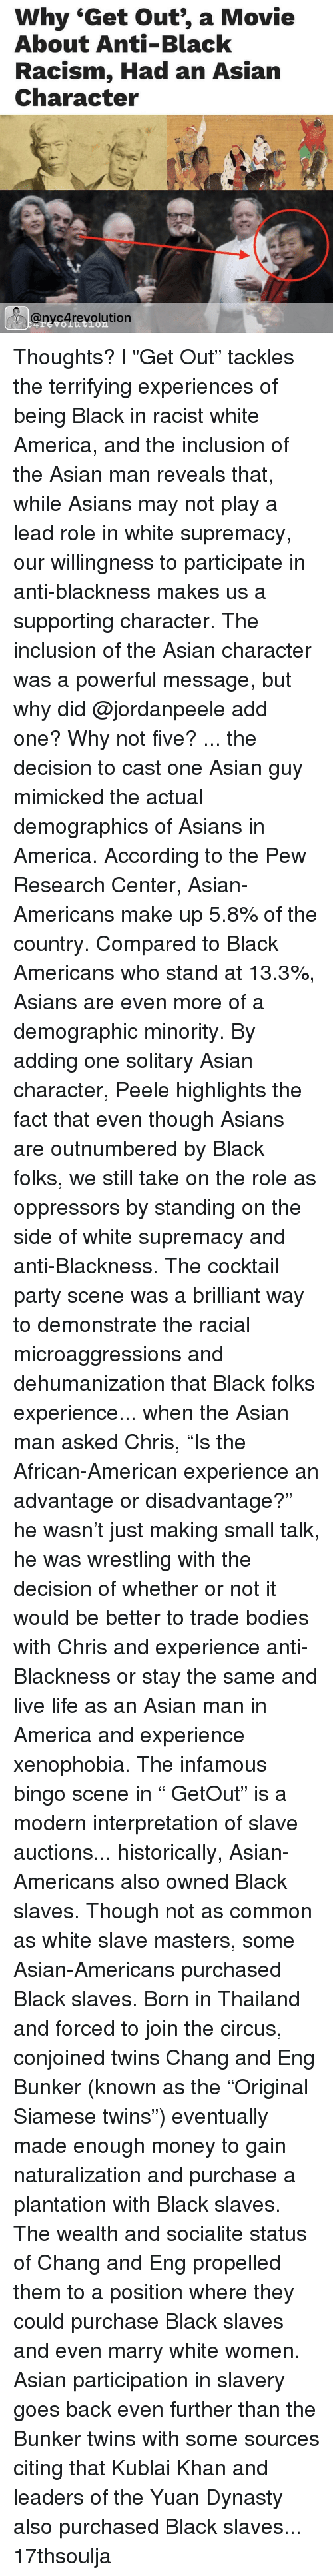 "Asian, Memes, and Thailand: Why ""Get out, a Movie  About Anti-Black  Racism, Had an Asian  Character  @nycArevolution Thoughts? l ""Get Out"" tackles the terrifying experiences of being Black in racist white America, and the inclusion of the Asian man reveals that, while Asians may not play a lead role in white supremacy, our willingness to participate in anti-blackness makes us a supporting character. The inclusion of the Asian character was a powerful message, but why did @jordanpeele add one? Why not five? ... the decision to cast one Asian guy mimicked the actual demographics of Asians in America. According to the Pew Research Center, Asian-Americans make up 5.8% of the country. Compared to Black Americans who stand at 13.3%, Asians are even more of a demographic minority. By adding one solitary Asian character, Peele highlights the fact that even though Asians are outnumbered by Black folks, we still take on the role as oppressors by standing on the side of white supremacy and anti-Blackness. The cocktail party scene was a brilliant way to demonstrate the racial microaggressions and dehumanization that Black folks experience... when the Asian man asked Chris, ""Is the African-American experience an advantage or disadvantage?"" he wasn't just making small talk, he was wrestling with the decision of whether or not it would be better to trade bodies with Chris and experience anti-Blackness or stay the same and live life as an Asian man in America and experience xenophobia. The infamous bingo scene in "" GetOut"" is a modern interpretation of slave auctions... historically, Asian-Americans also owned Black slaves. Though not as common as white slave masters, some Asian-Americans purchased Black slaves. Born in Thailand and forced to join the circus, conjoined twins Chang and Eng Bunker (known as the ""Original Siamese twins"") eventually made enough money to gain naturalization and purchase a plantation with Black slaves. The wealth and socialite status of Chang and Eng propelled them to a position where they could purchase Black slaves and even marry white women. Asian participation in slavery goes back even further than the Bunker twins with some sources citing that Kublai Khan and leaders of the Yuan Dynasty also purchased Black slaves... 17thsoulja"